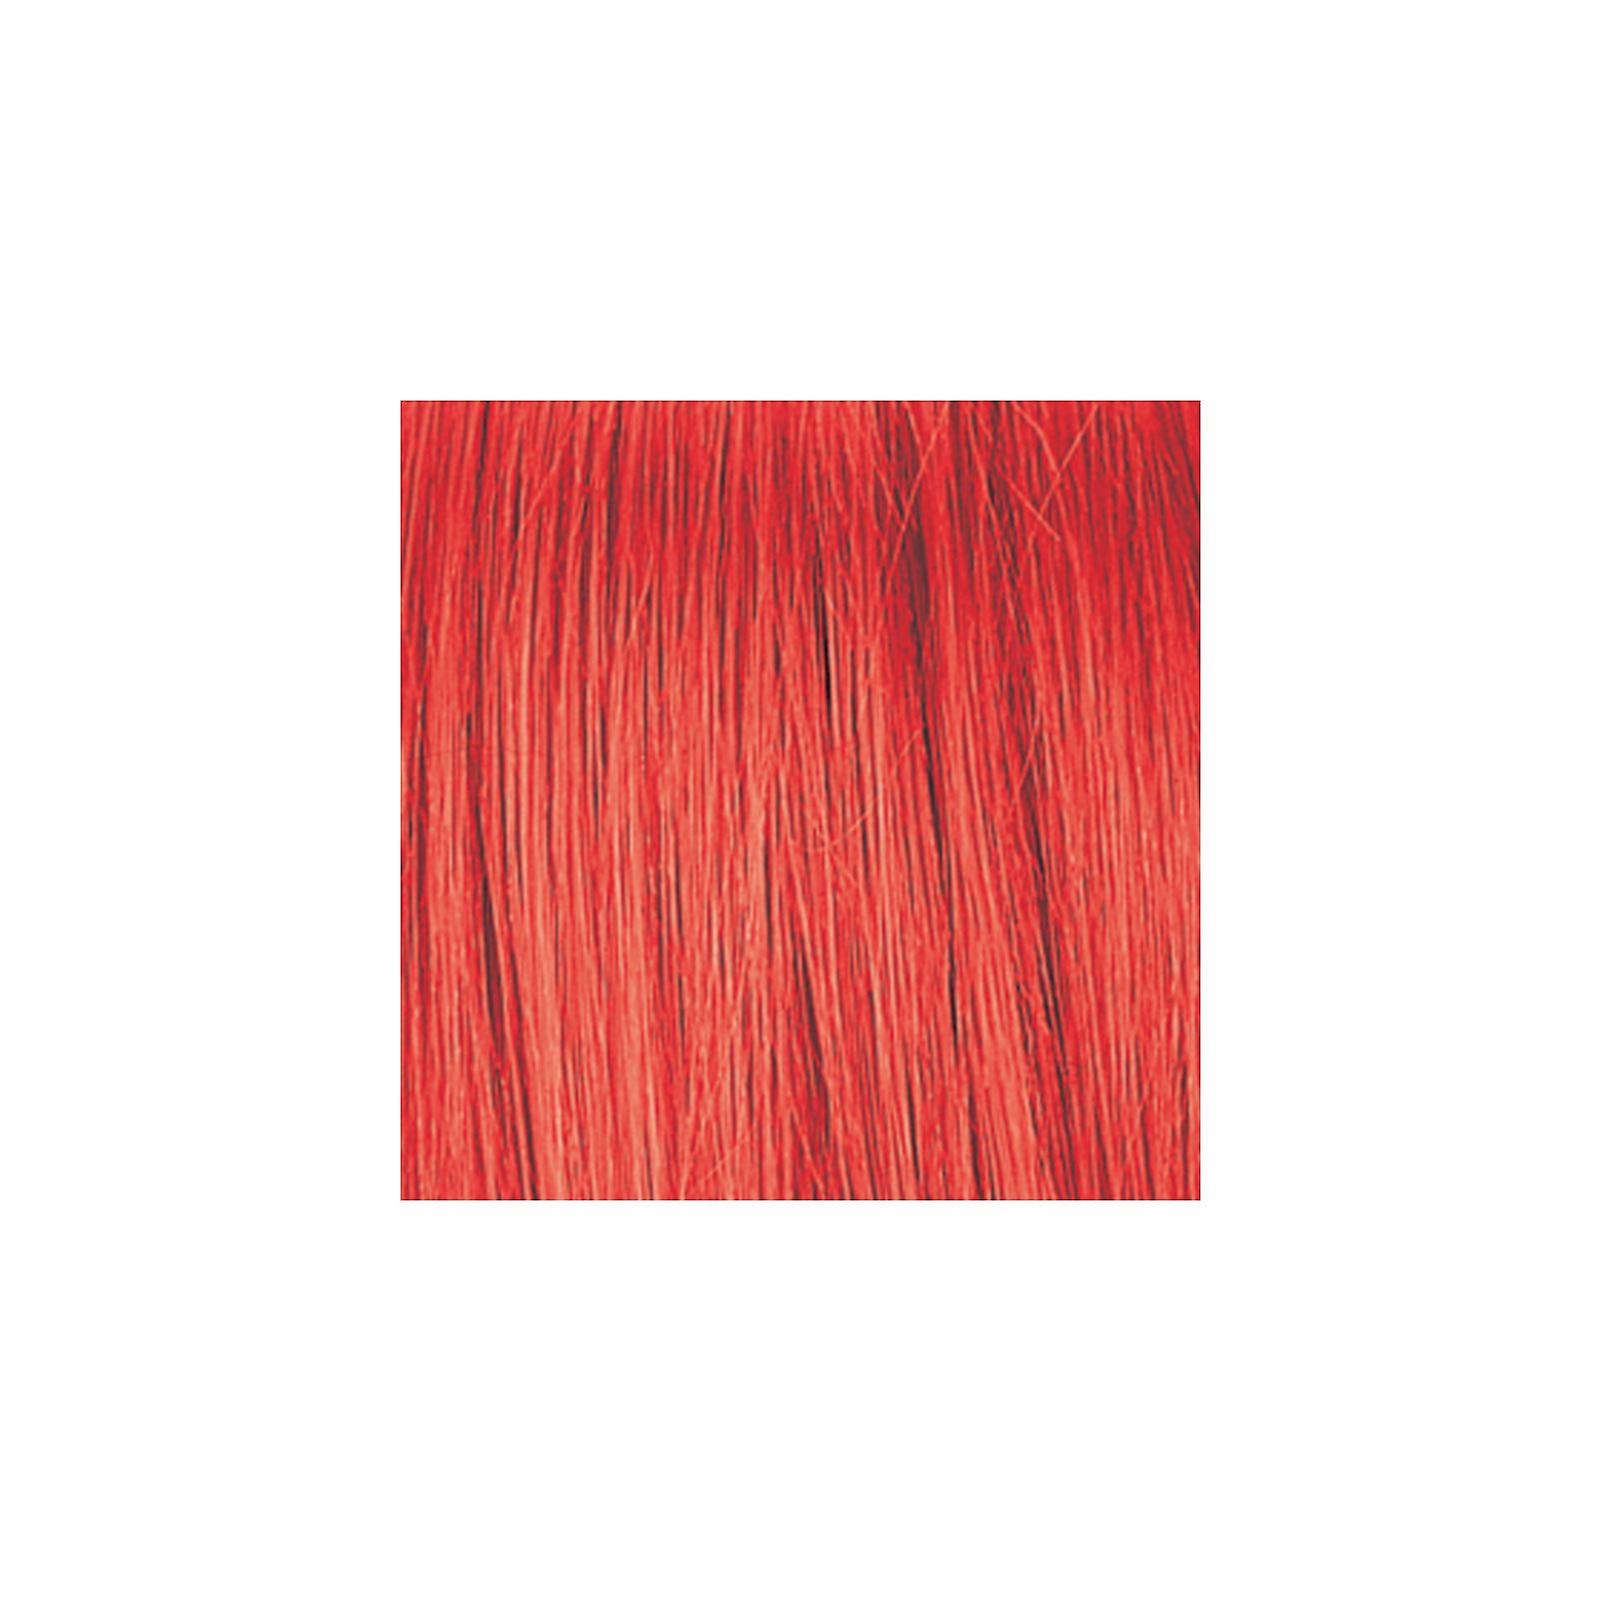 Stargazer Hair Dye -  Uv Red X 2 With Tint Brush